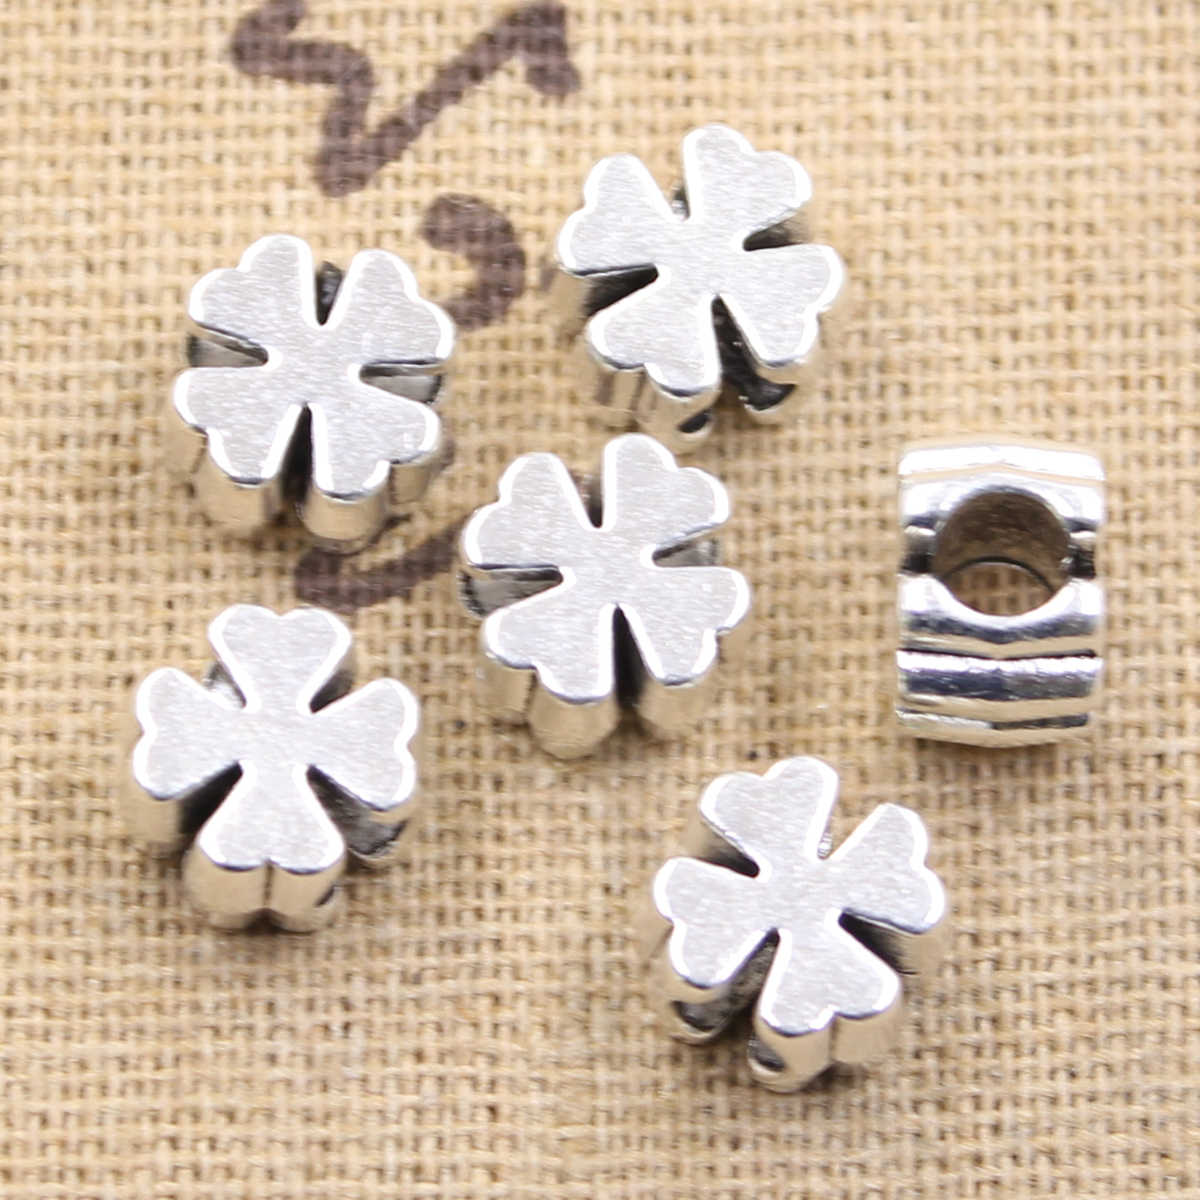 6pcs 10x10x7mm cross clover 4mm big hole bead charm fits antique silver charm bracelets Wholesale